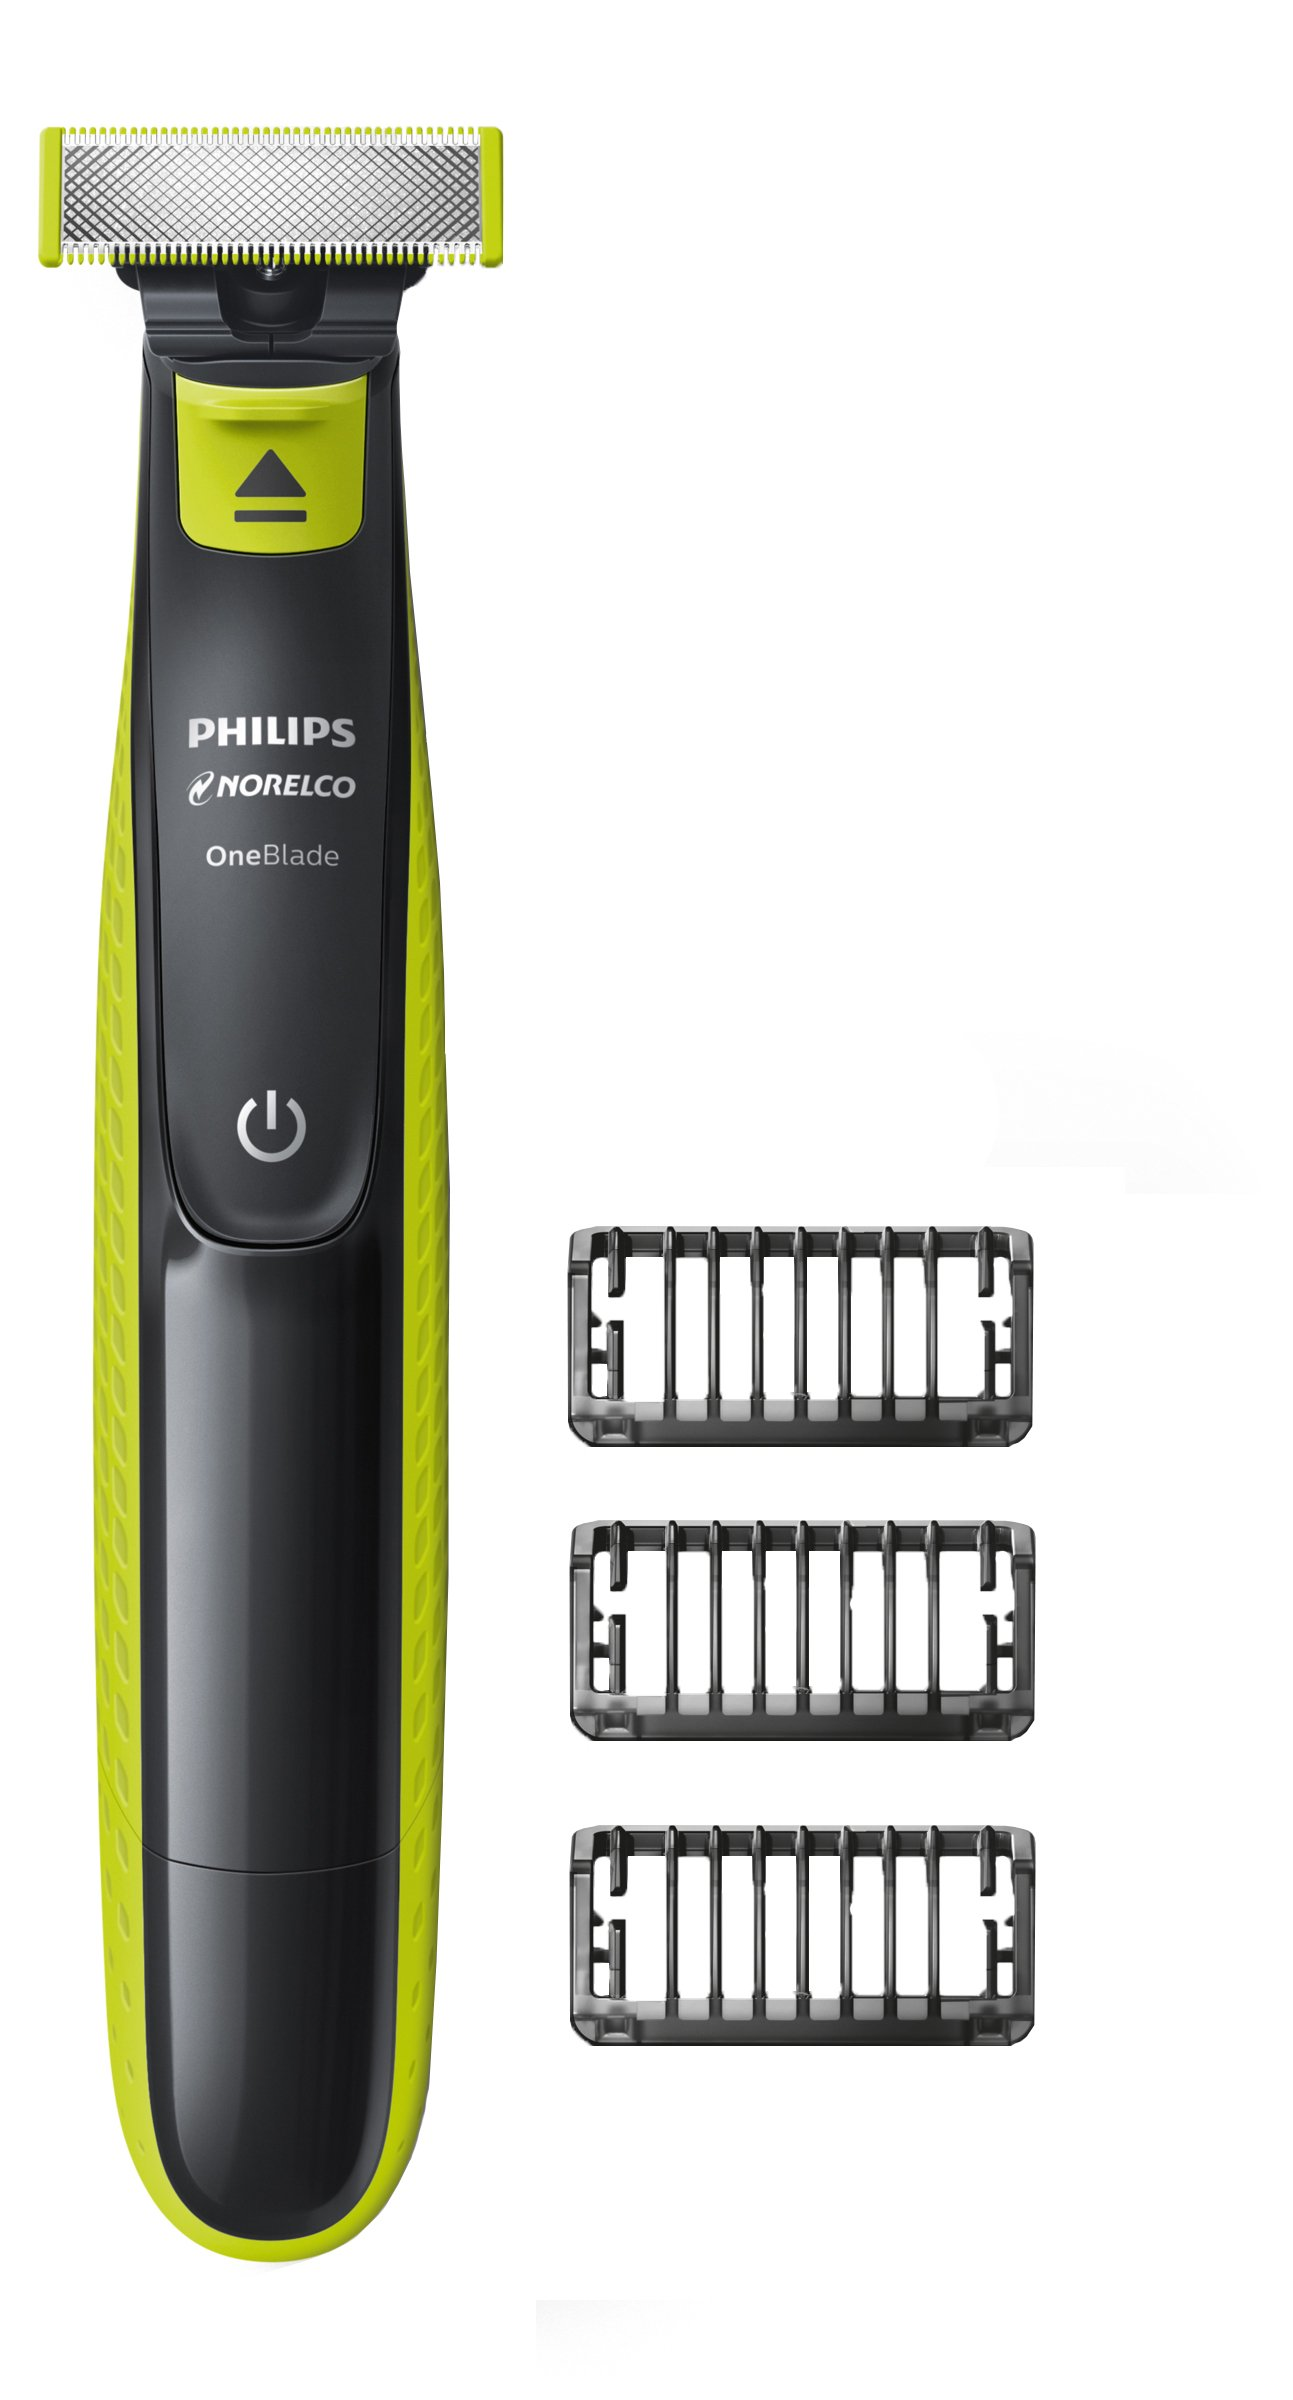 Philips Norelco OneBlade QP2520 90